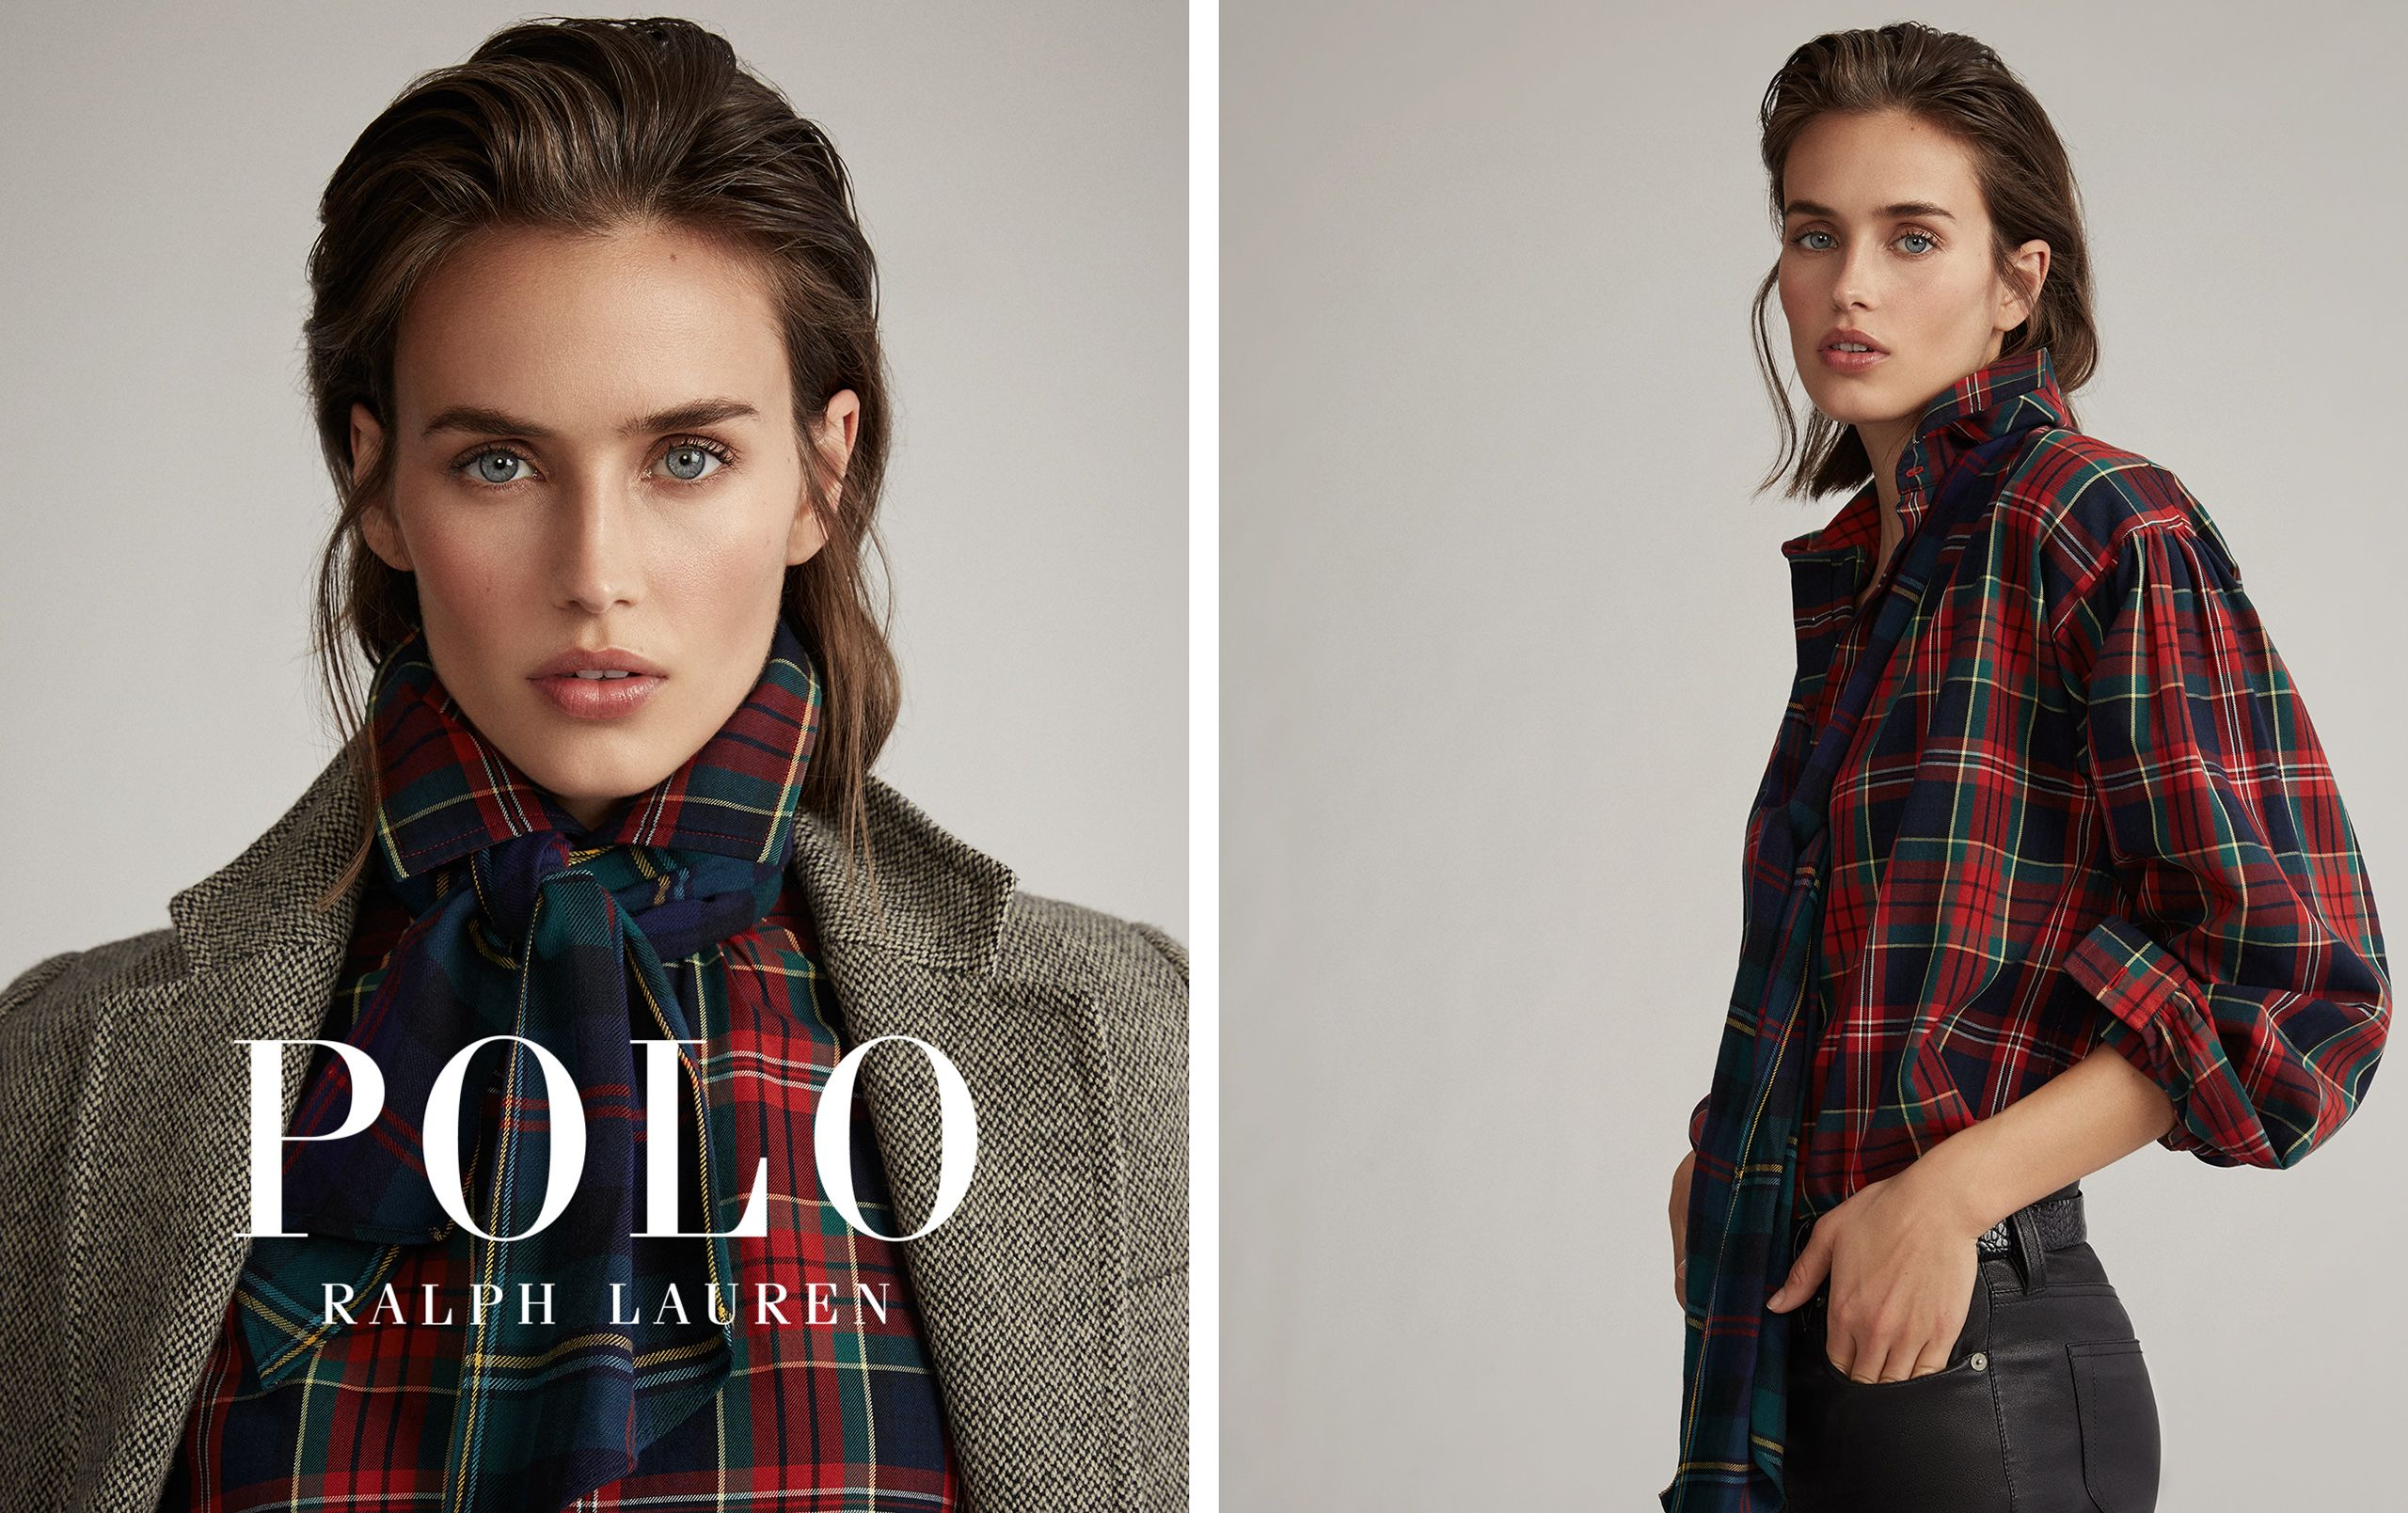 Polo Ralph Lauren Lookbook